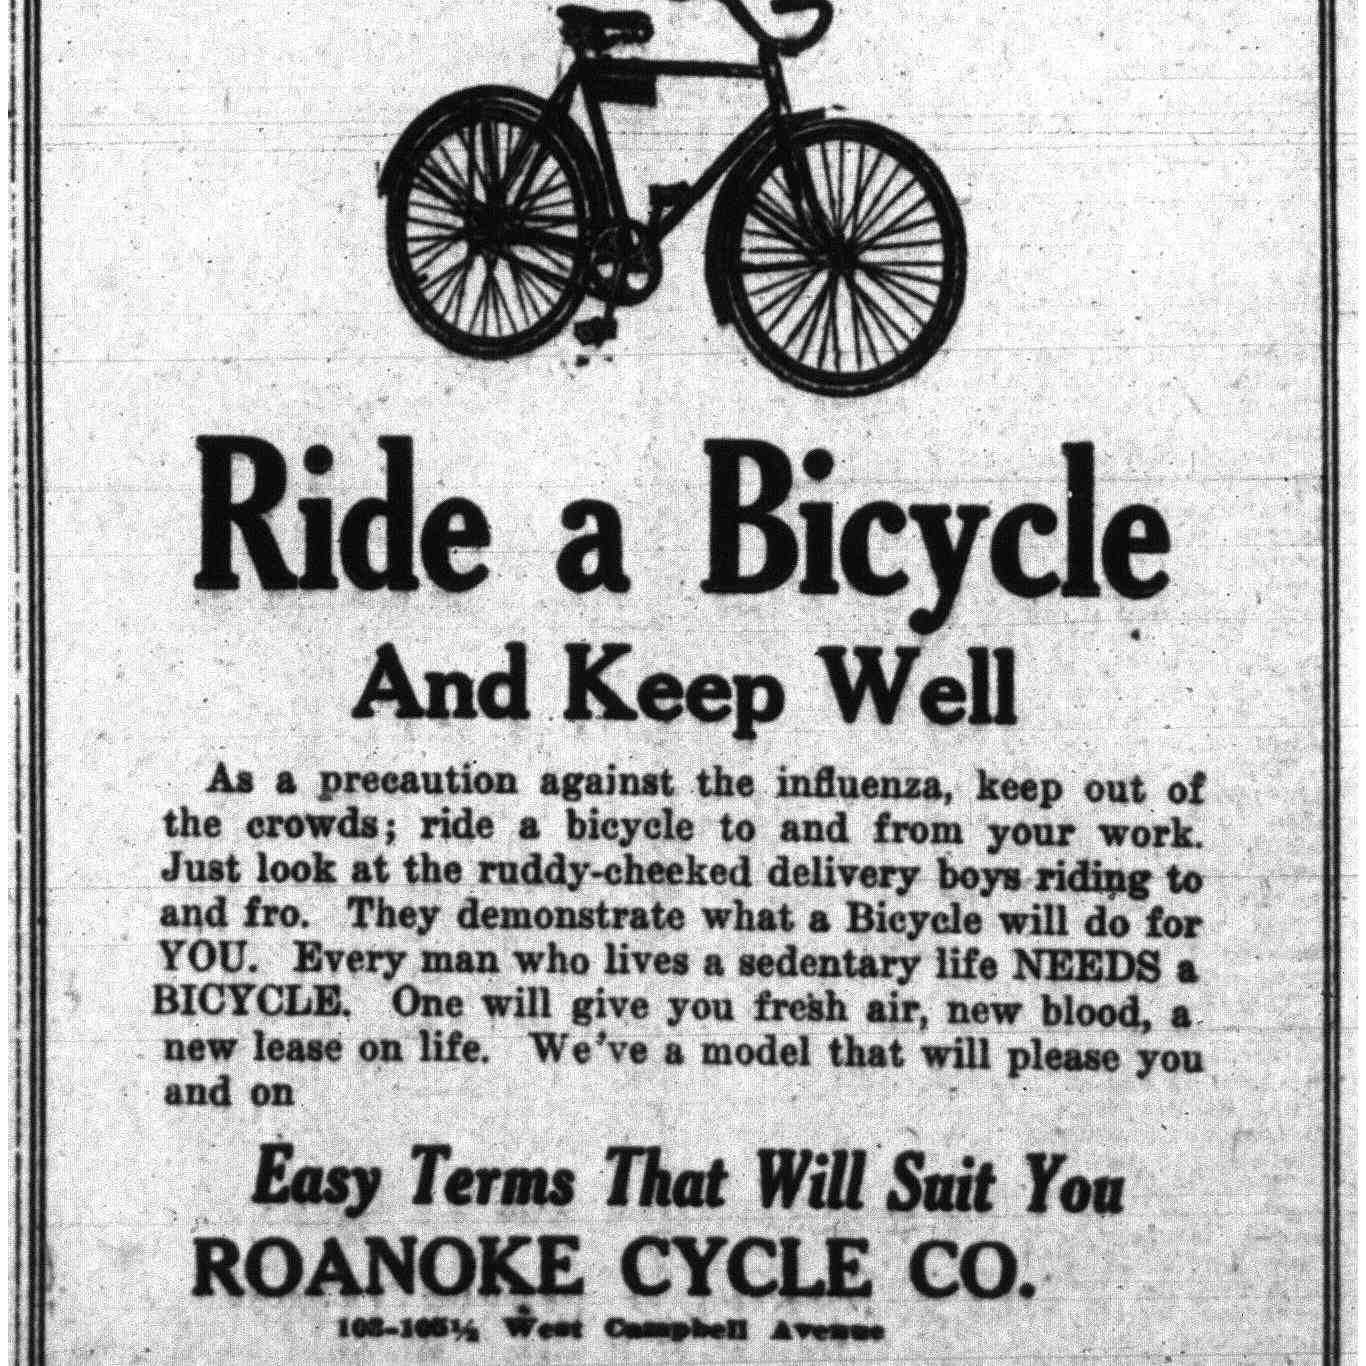 Ride a bicycle!